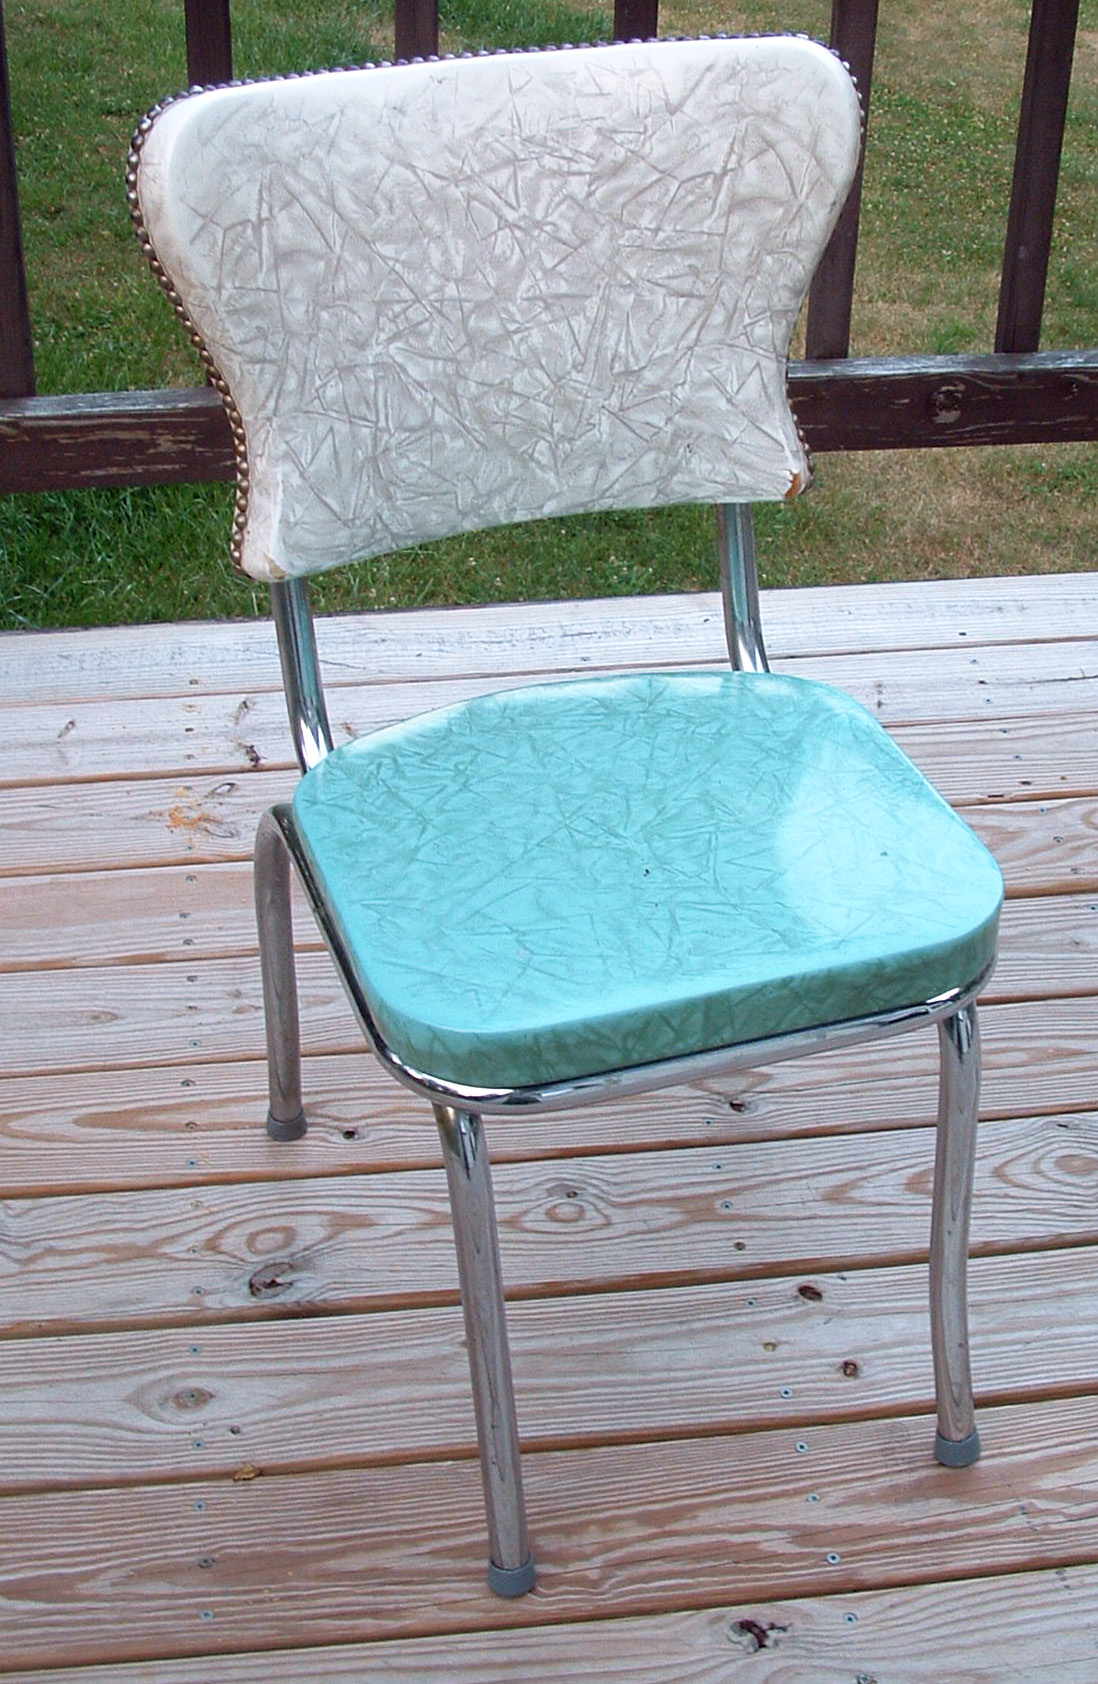 crafty challenge 9 kitchen chair re upholstery teal kitchen chairs Original chair before re upholstery